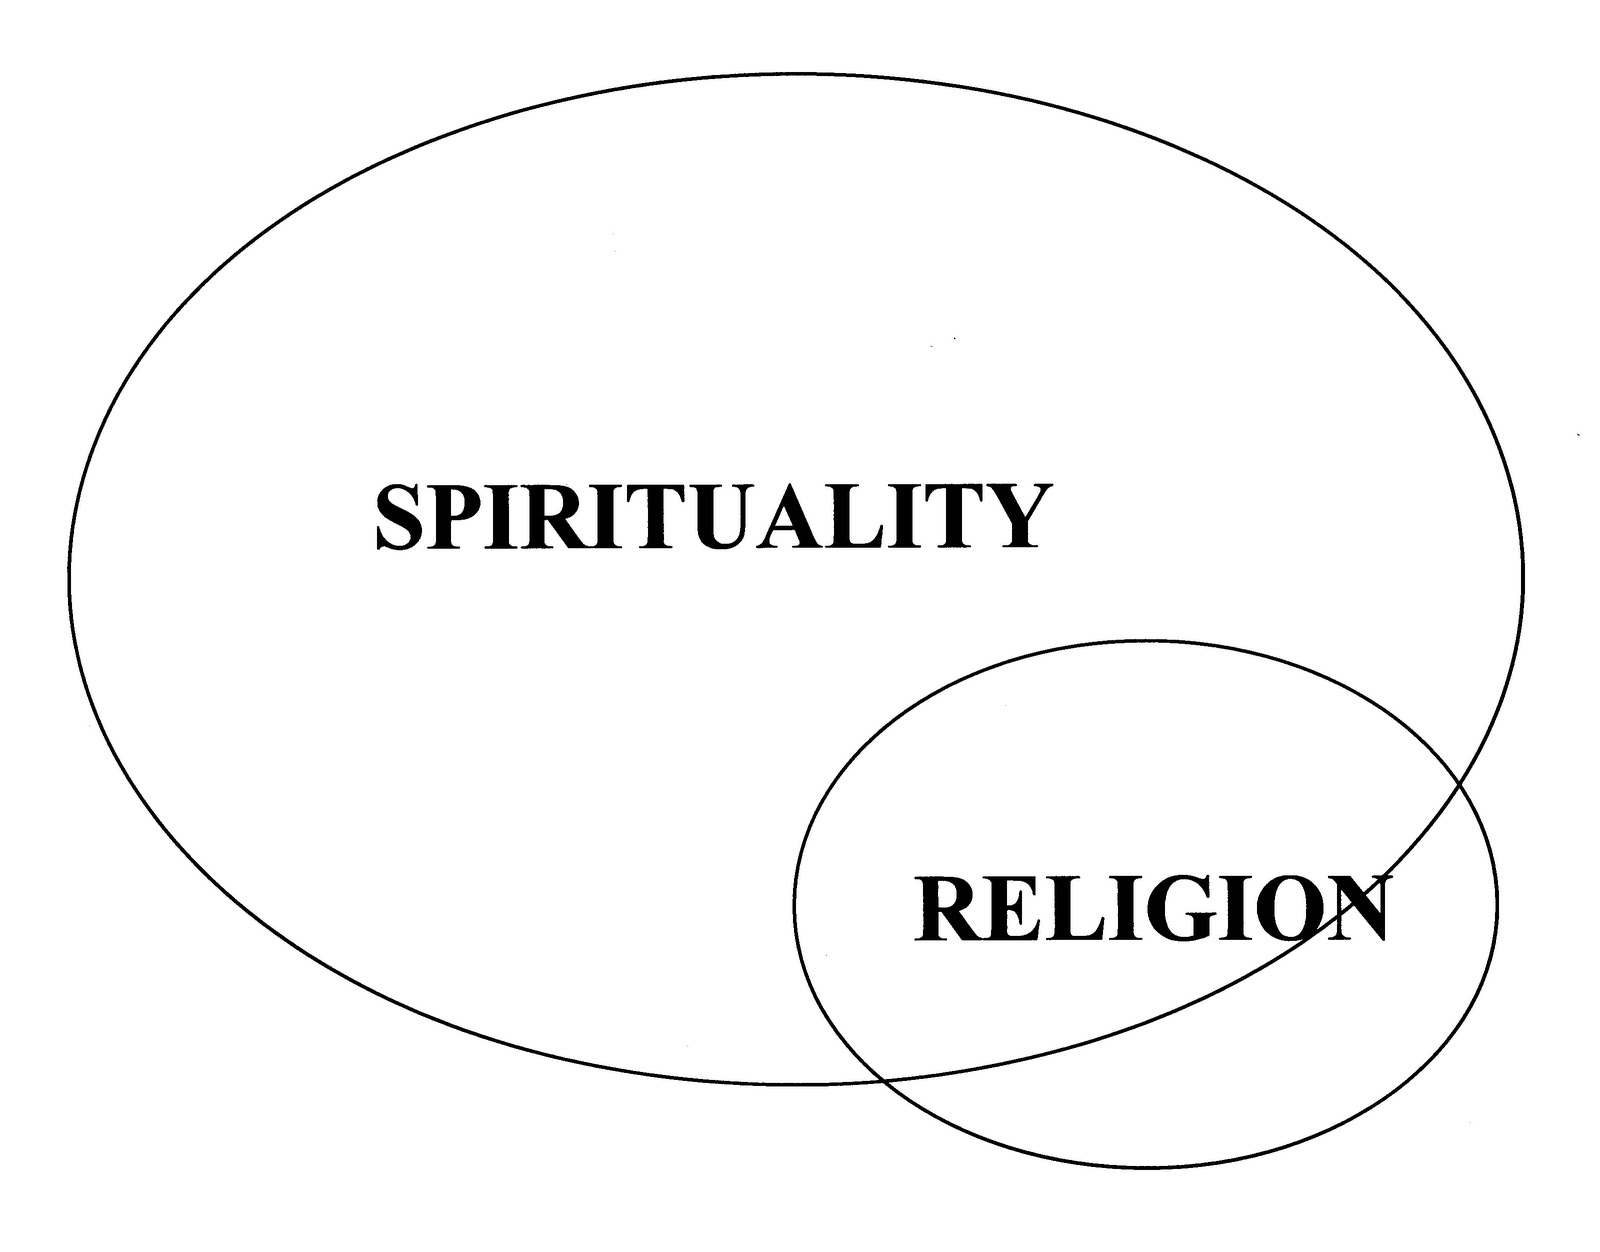 Venn diagram religious beliefs search religions venn diagrams venn diagram religious beliefs search religions venn diagrams crossing nebraska spirituality and religion pooptronica Images